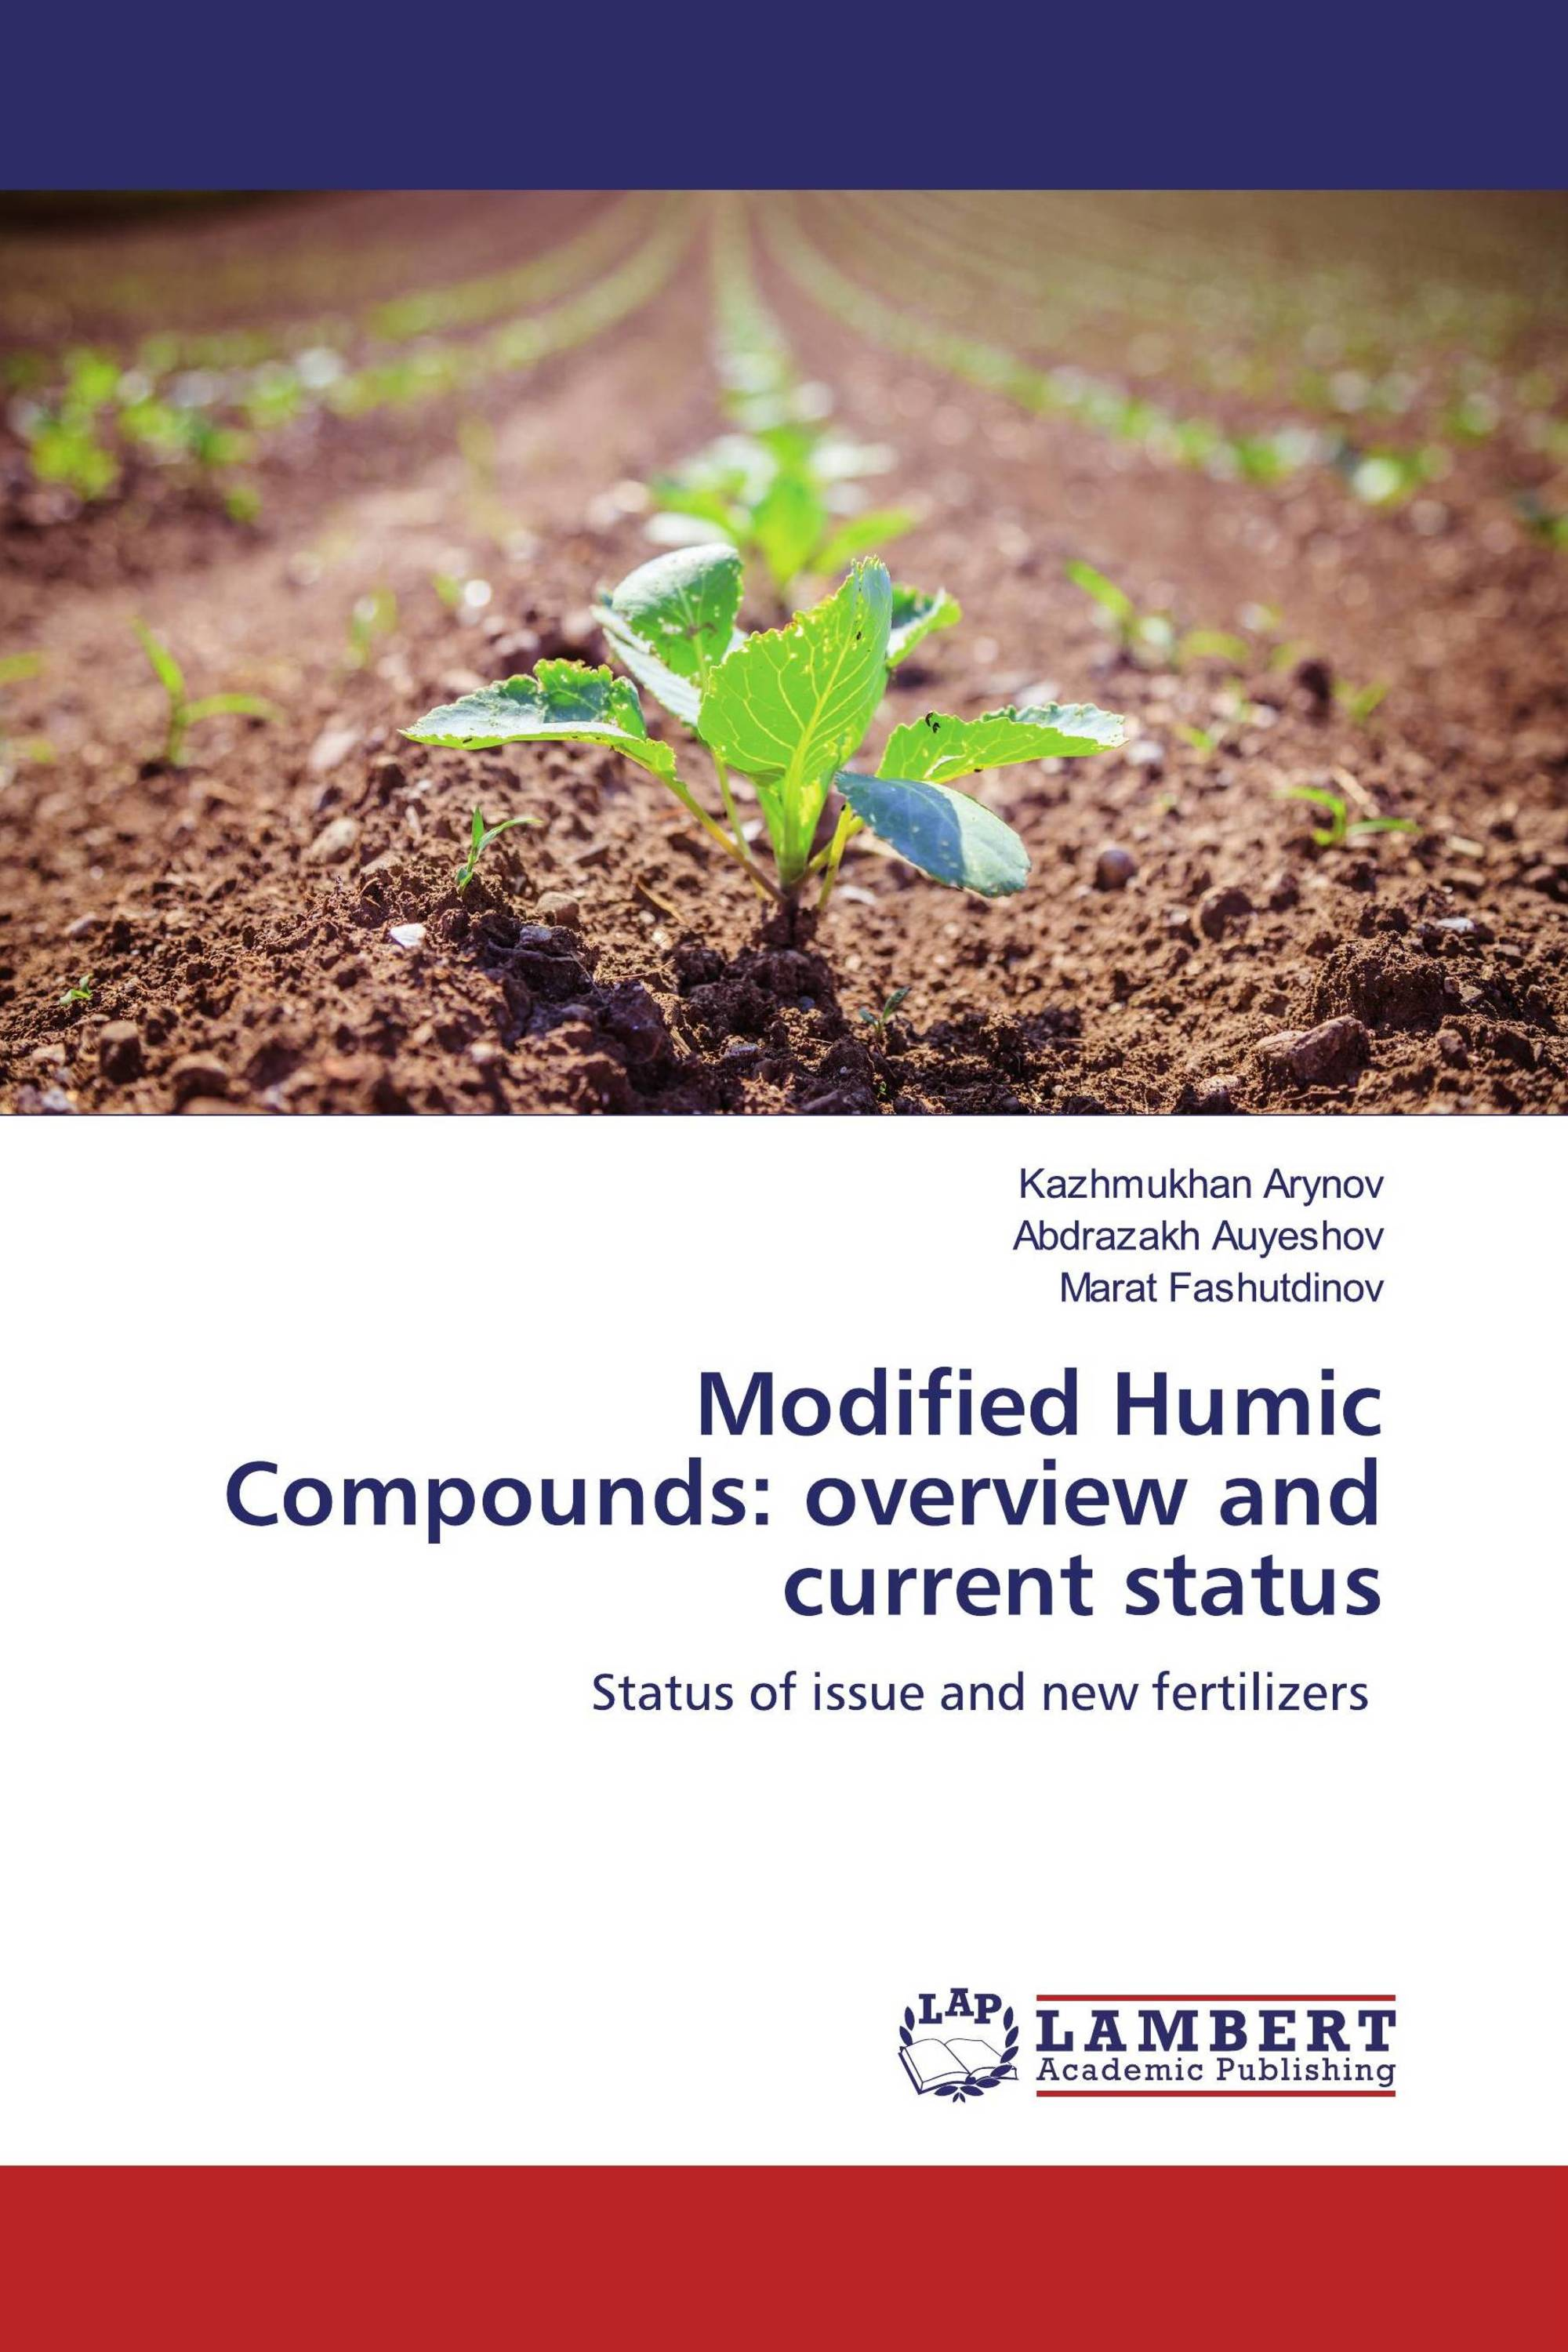 Modified Humic Compounds: overview and current status